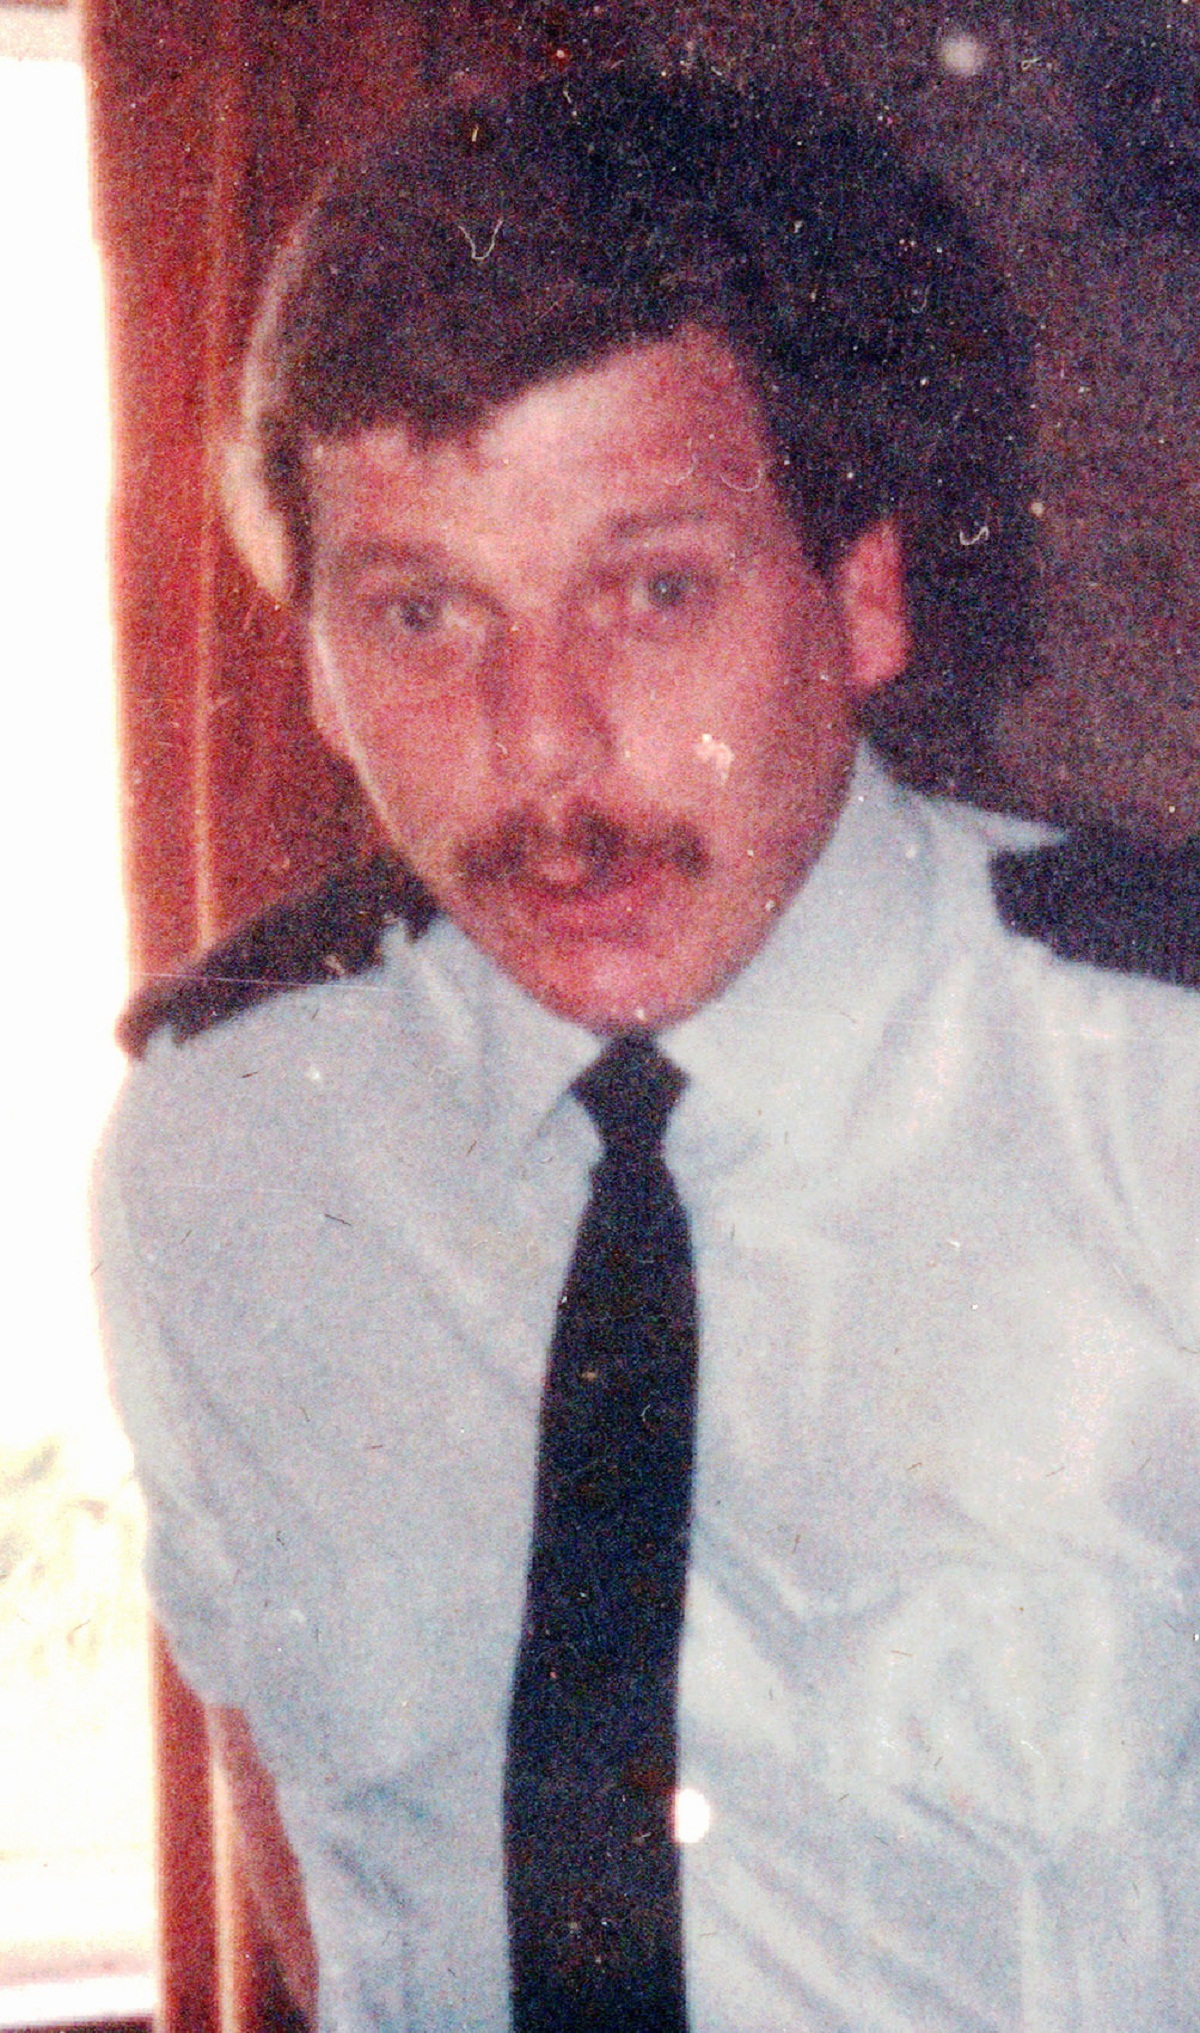 Firefighter Jeff Naylor, who died from injuries sustained while trying to rescue children from a burning house in 1983